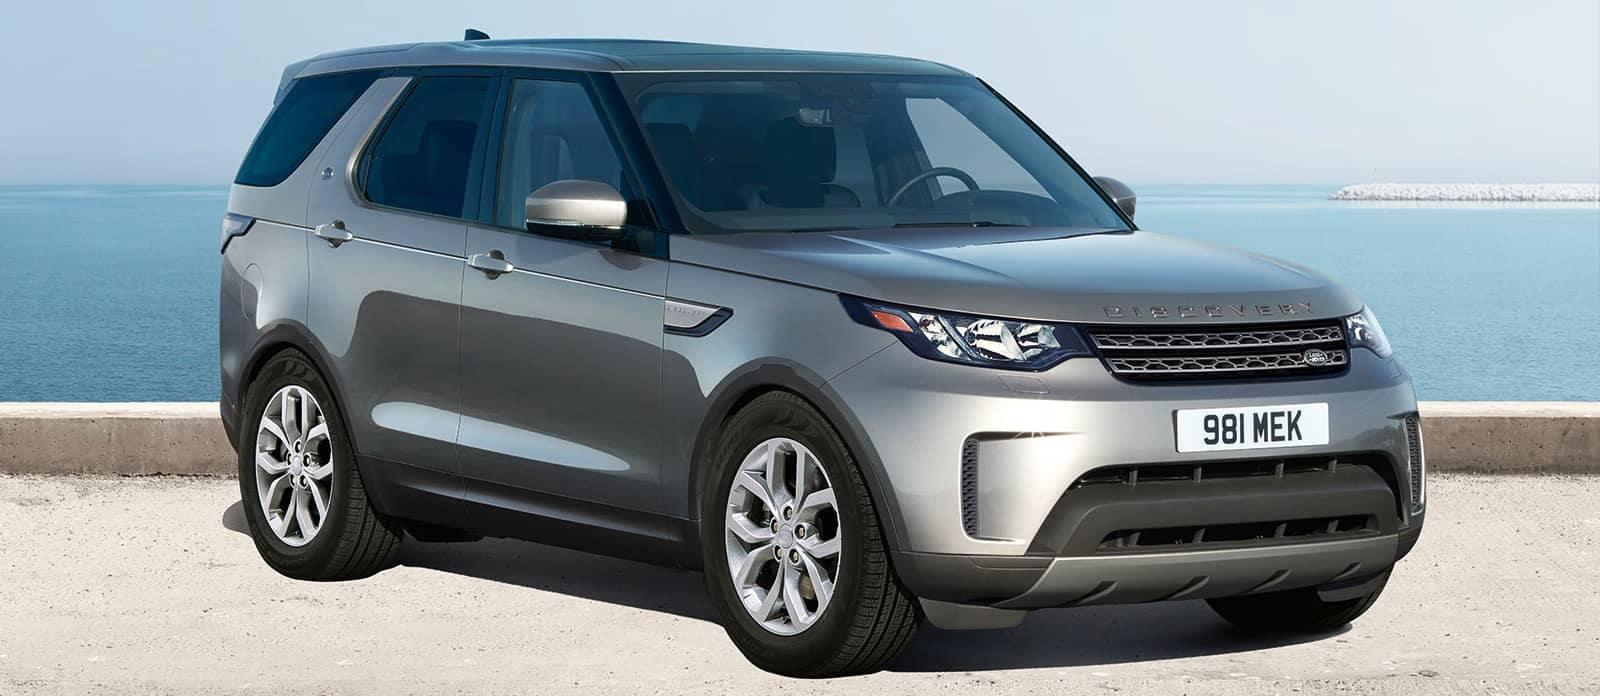 browse in leasetrader hse just find section rover american eagle the over landrover links deals to land for lease wyta com database below specials coupons looking huq this discovery sd follow